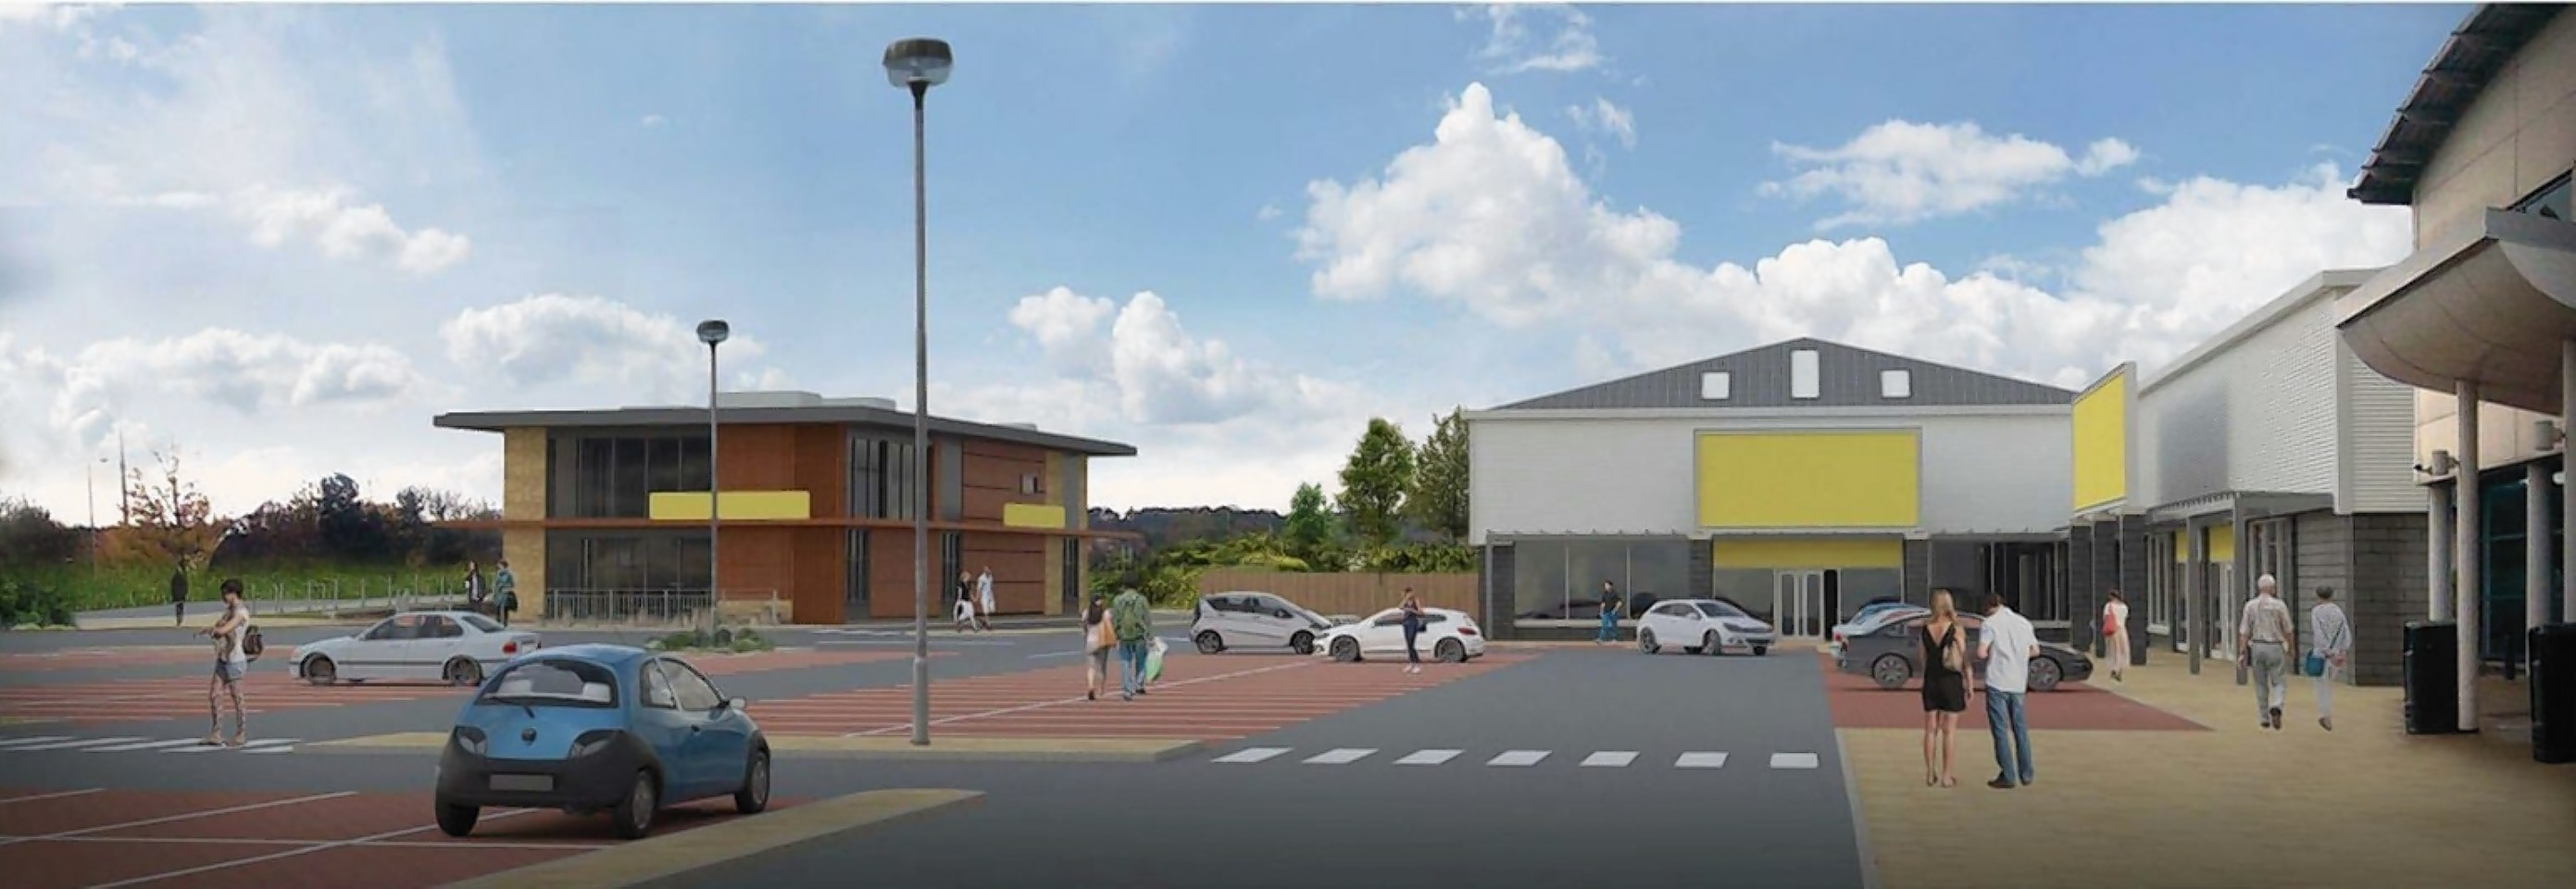 The site to be redeveloped at Inshes Retail Park